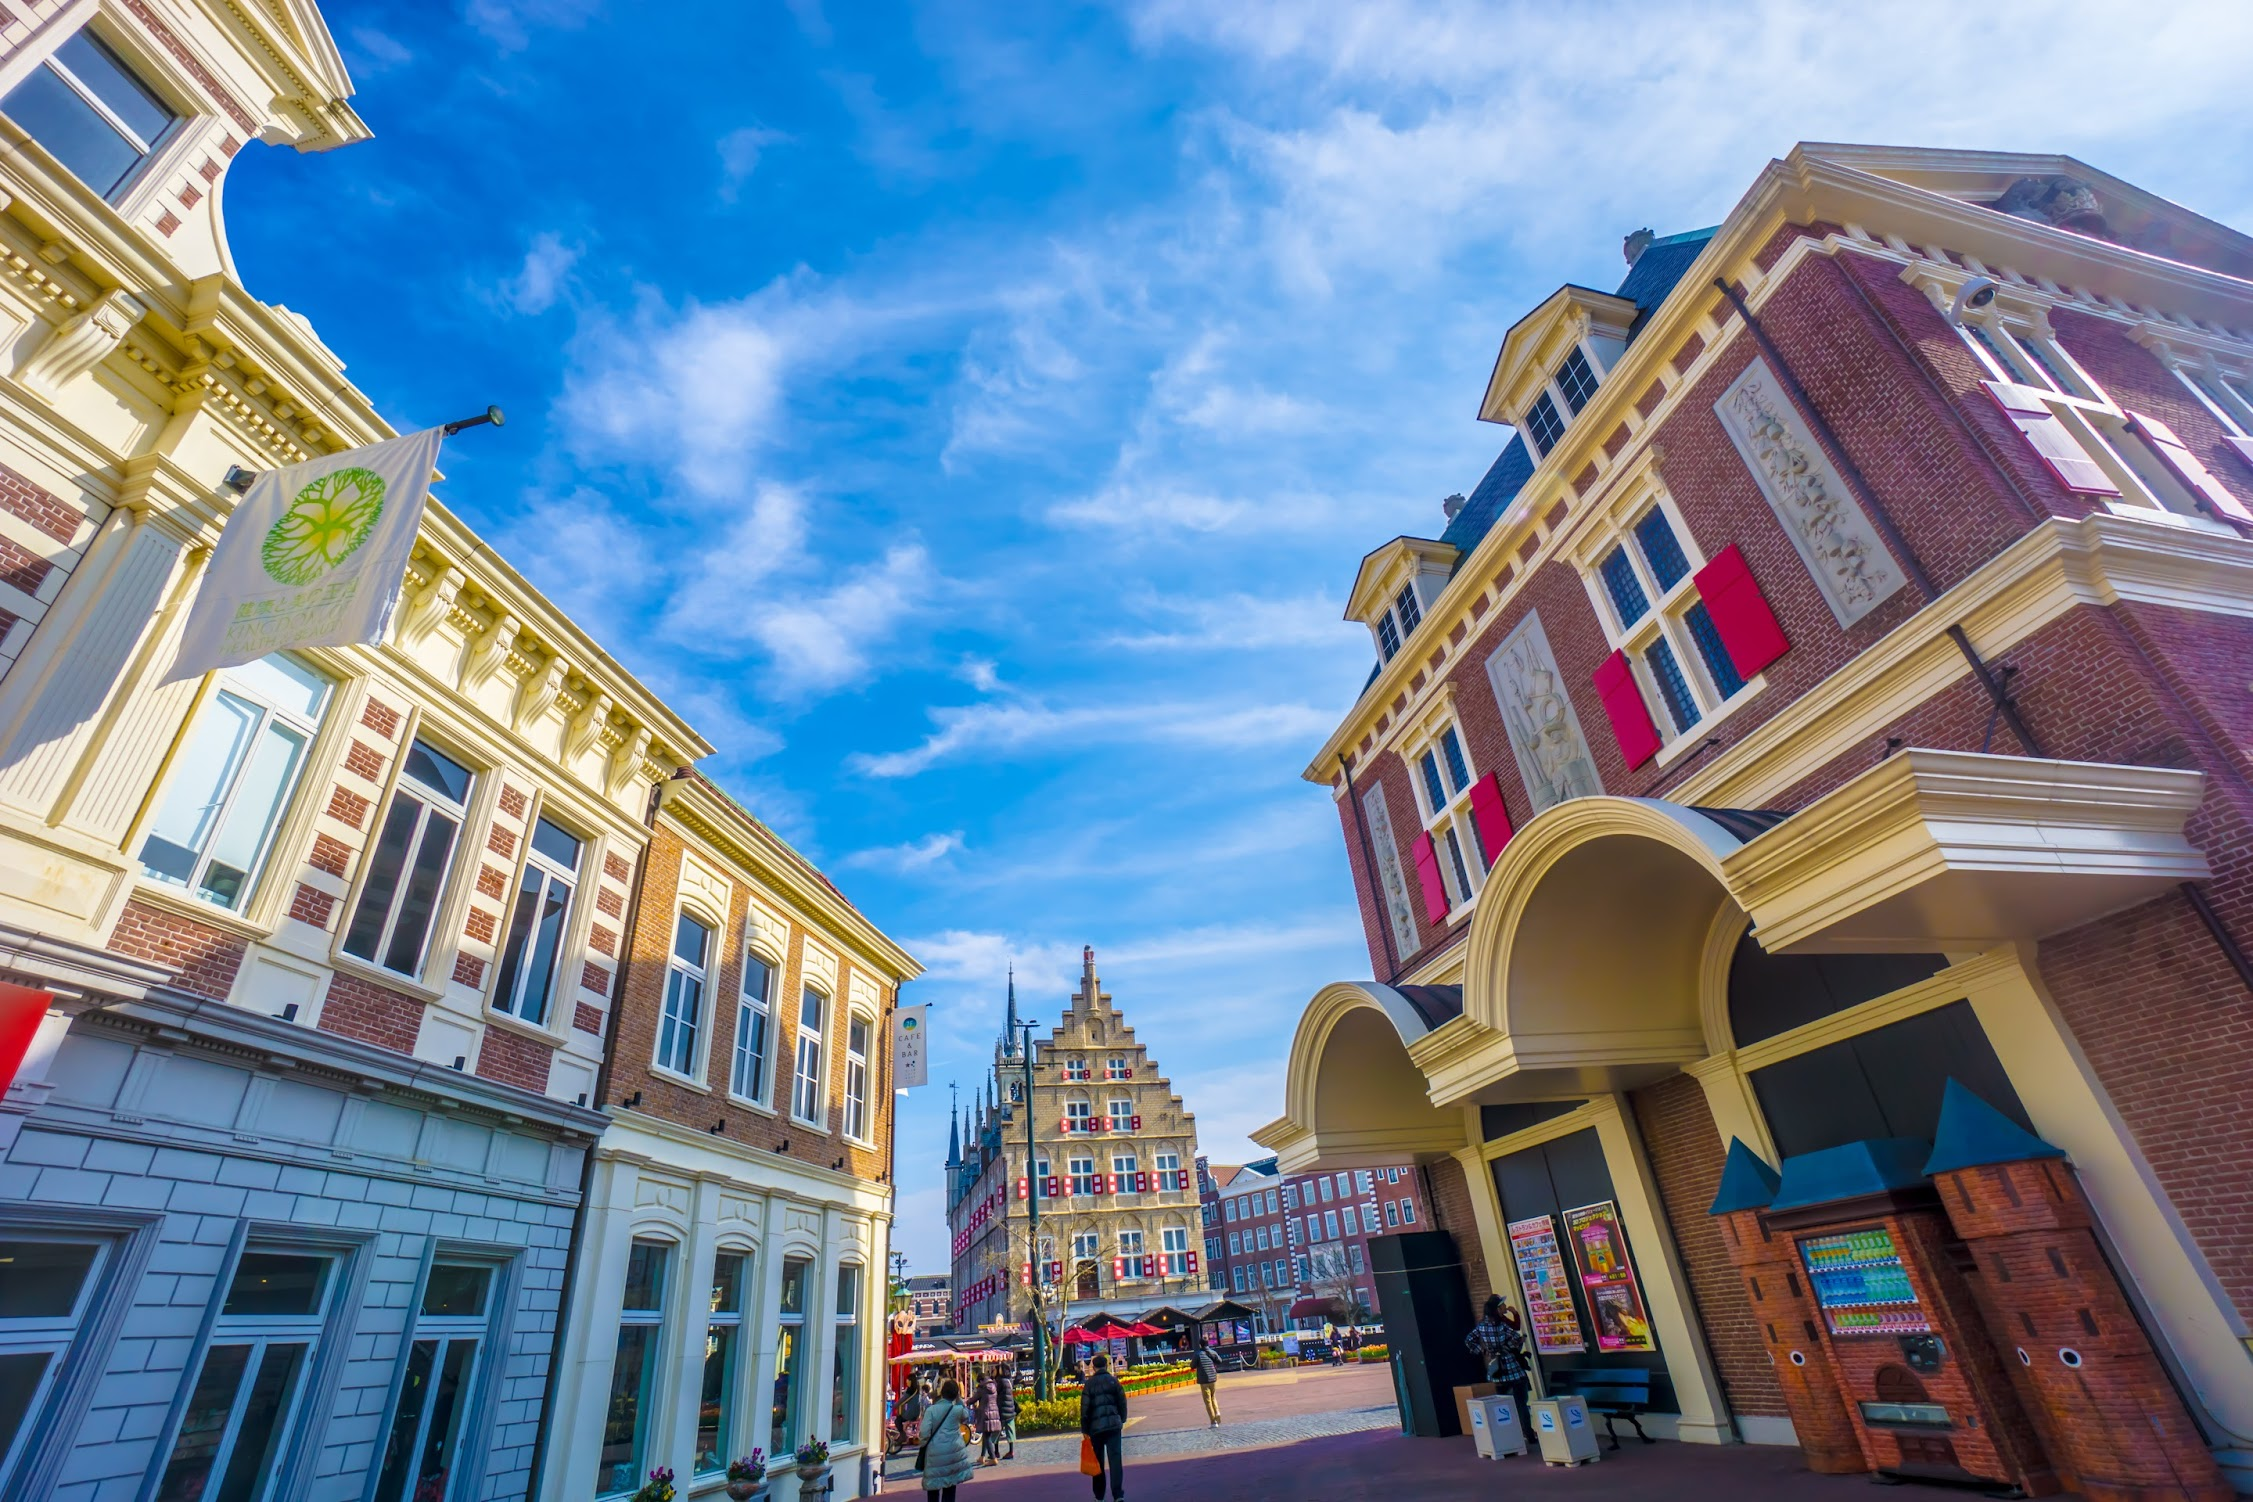 Huis Ten Bosch Amsterdam City4